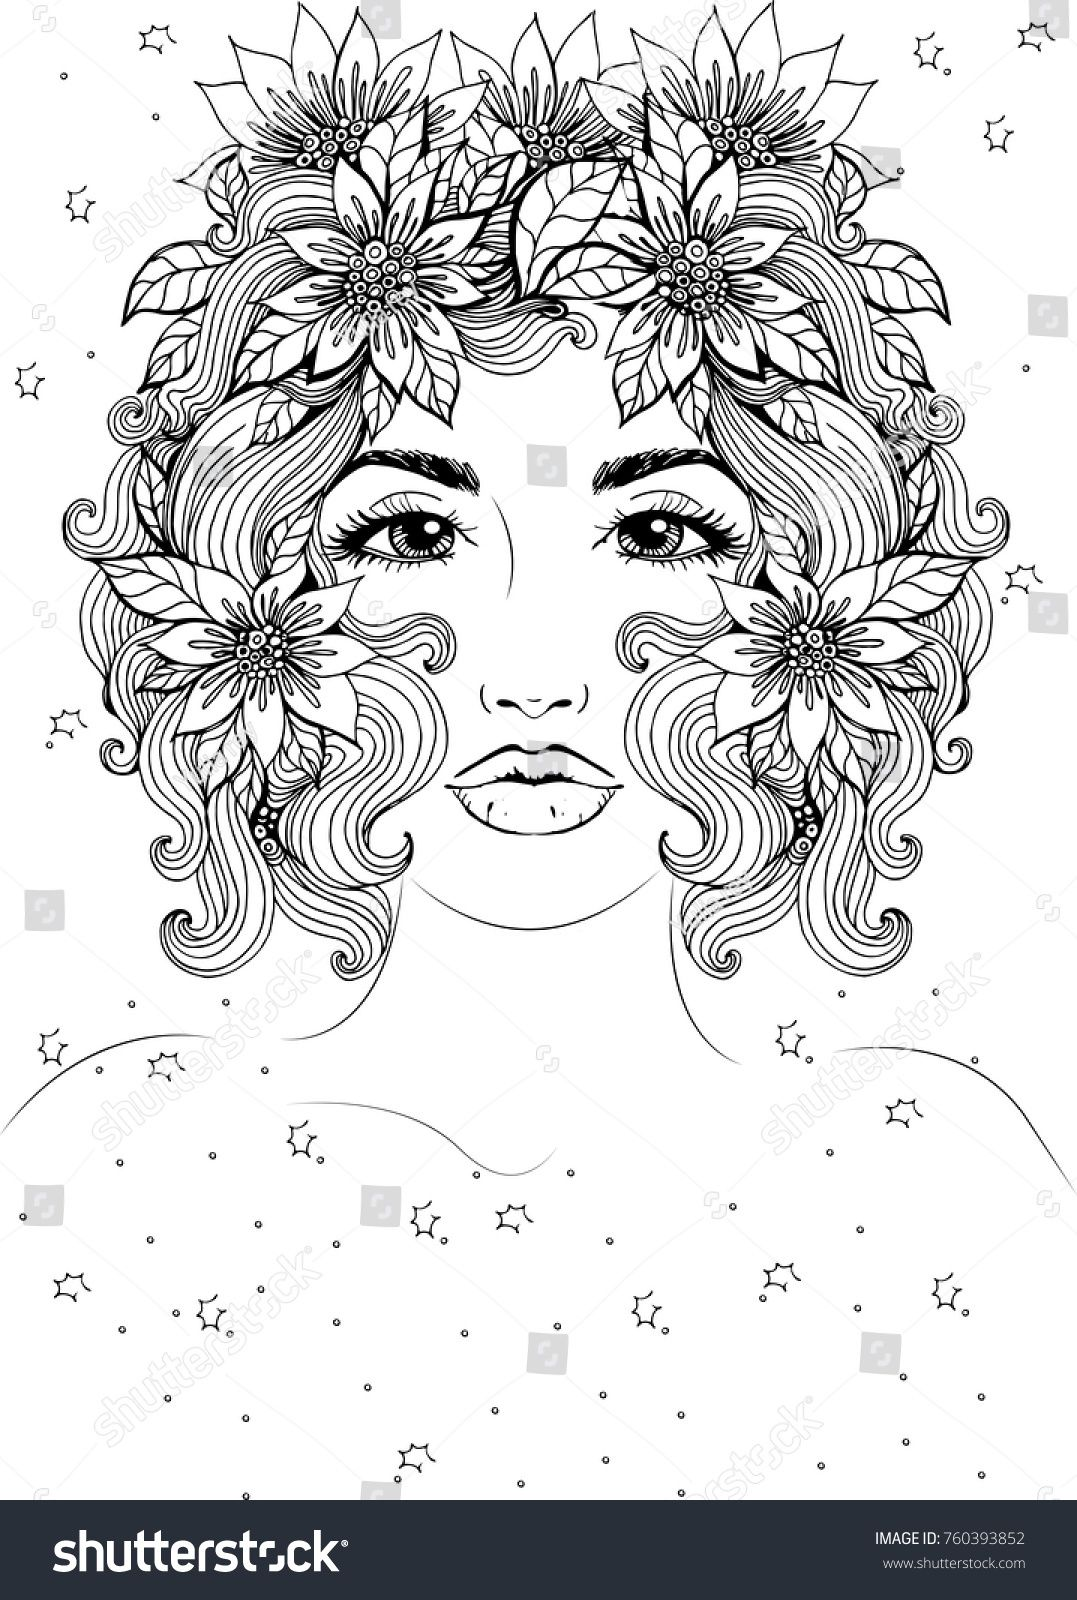 Vector Beautiful Girl With Short Hair And Flowers In Hair Fashionable Sketch Ideal For Coloring Designs Coloring Books Devian Art African Art Paintings